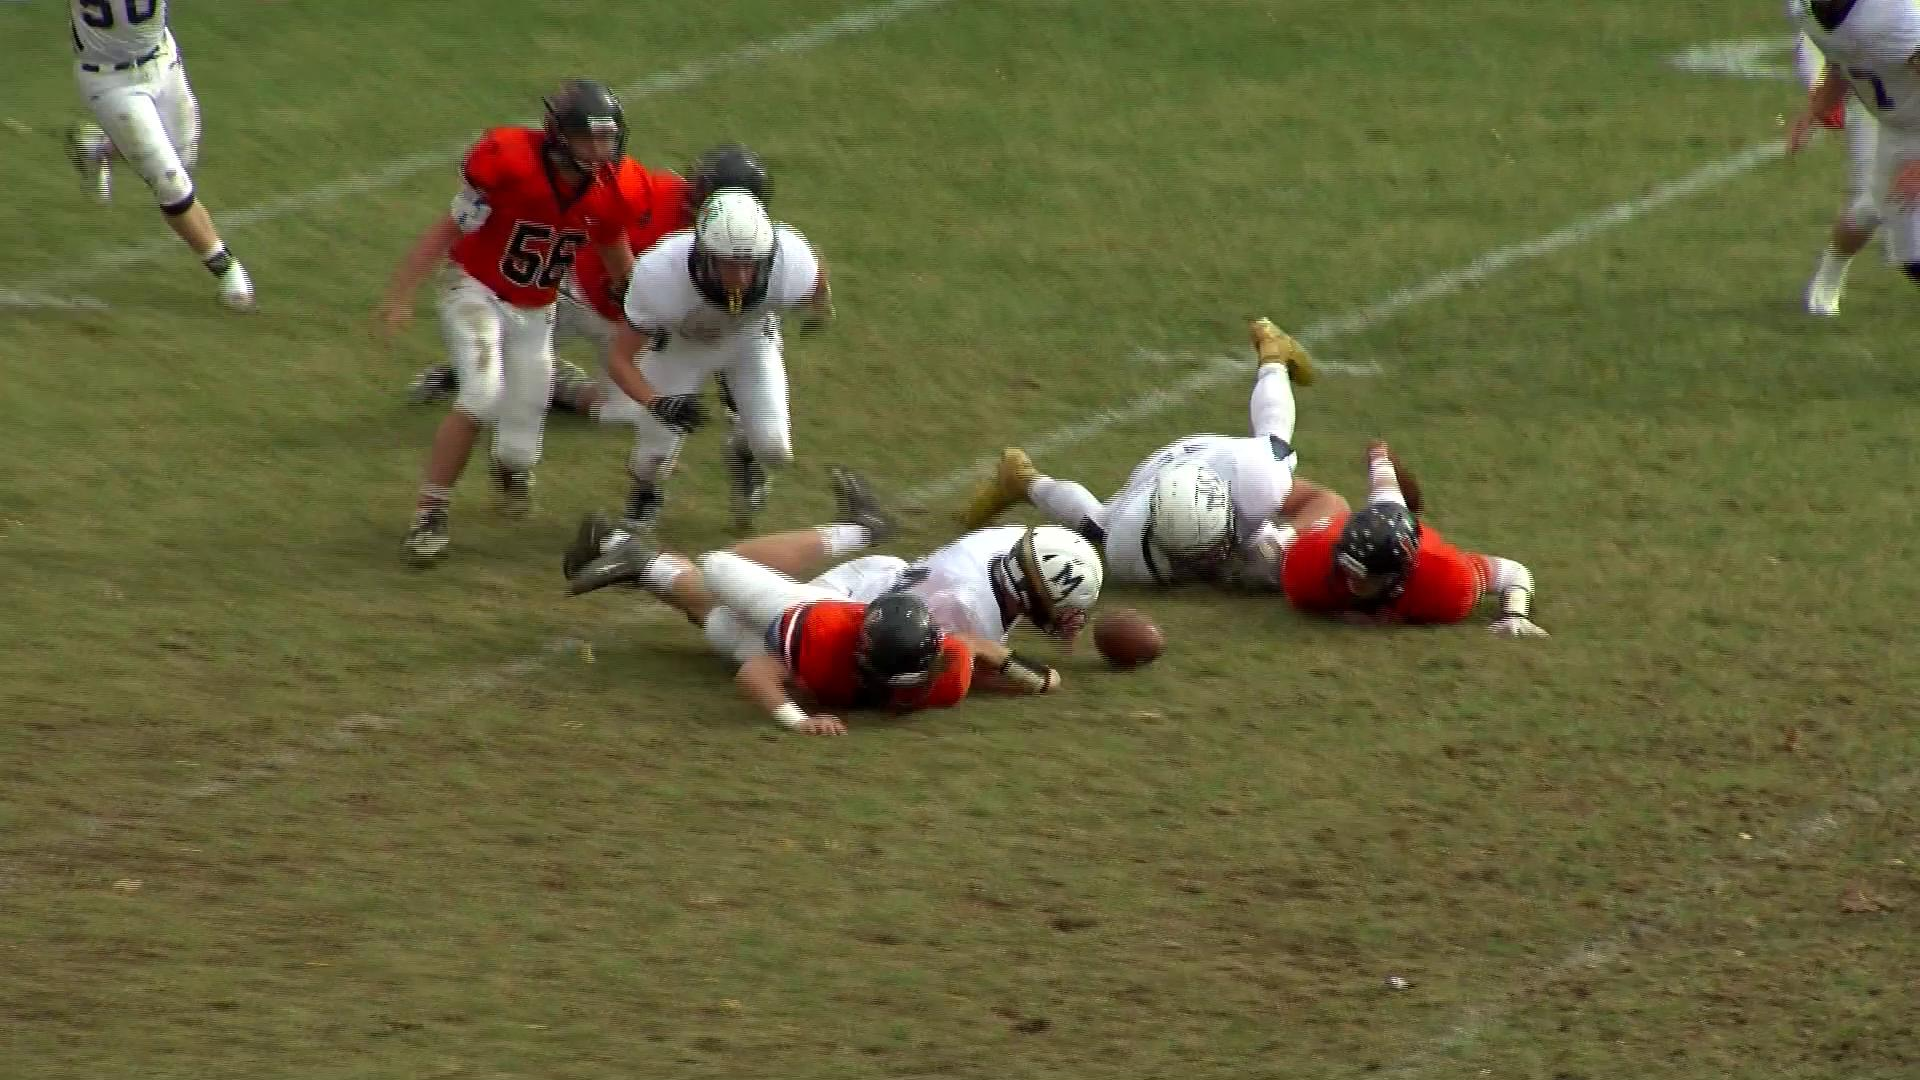 11.7.15- High School Football- Magnolia caps a perfect regular season with win at Linsly